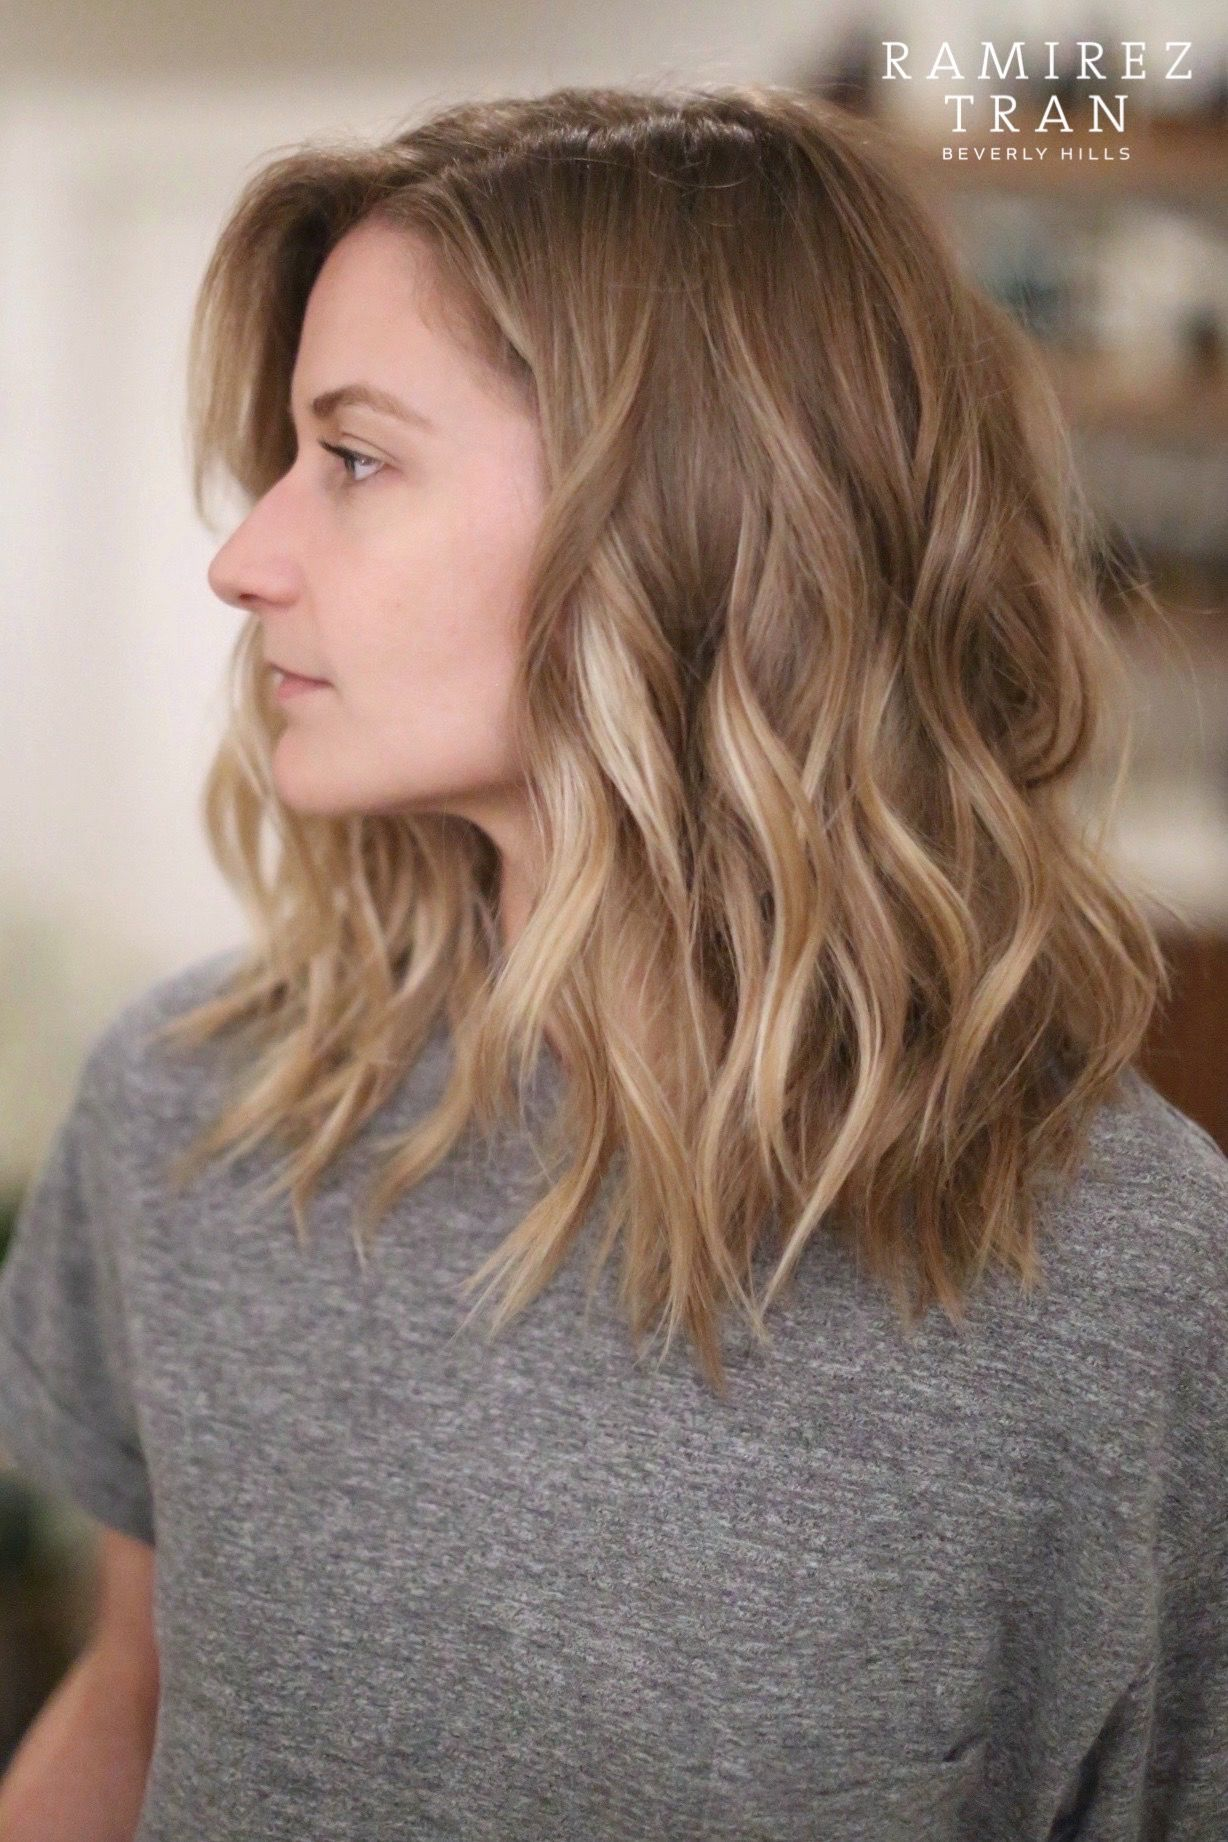 Coiffure Wave Sur Cheveux Mi-long Summer Hair People Decoration En 2018 Pinterest